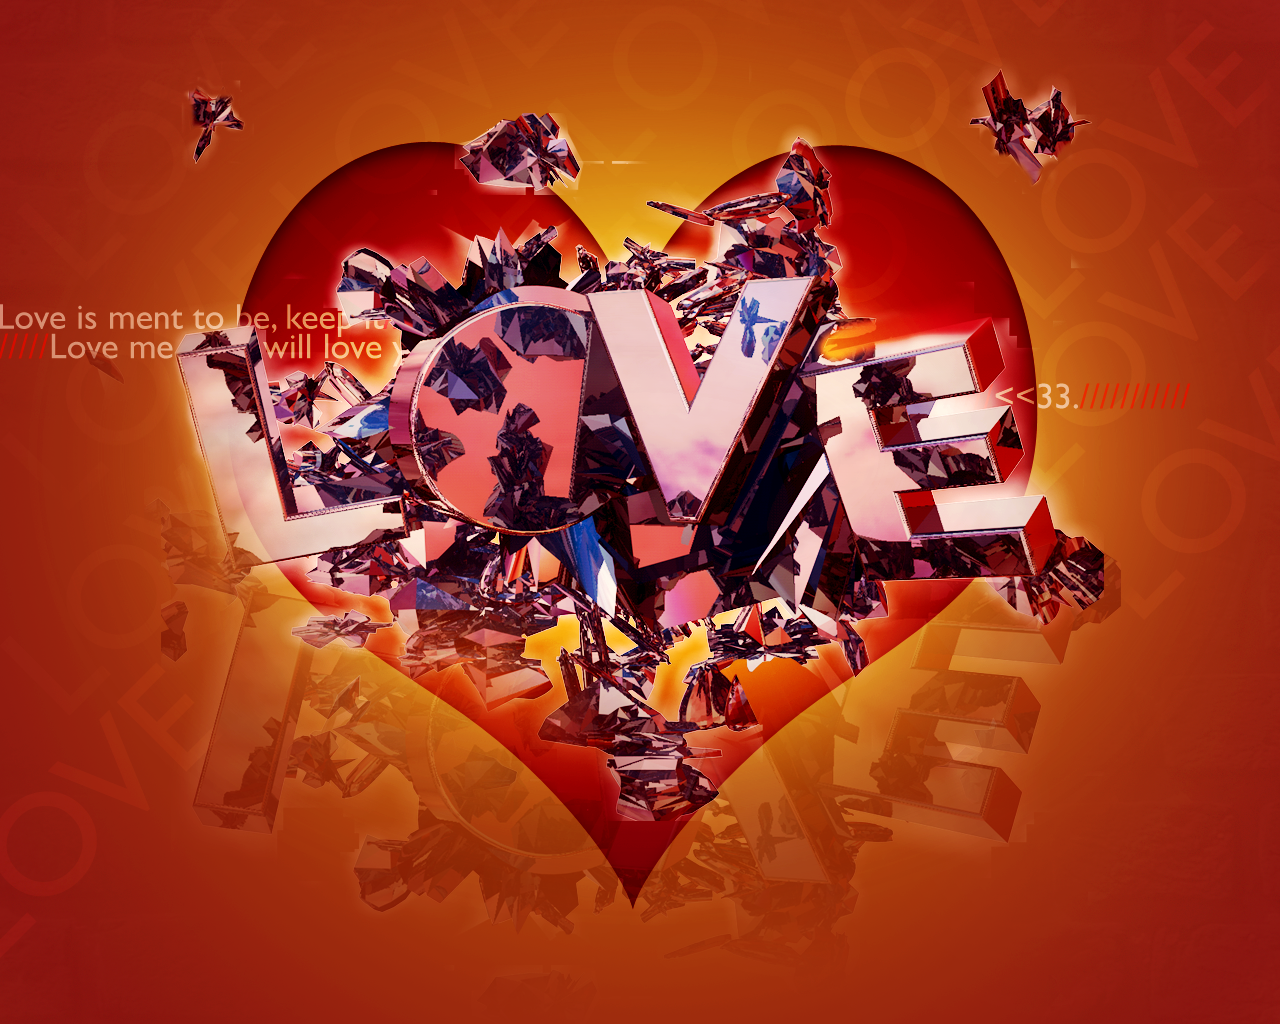 Love Wallpaper All New : Amazing Wallpapers: New love photos wallpaper, new love wallpaper